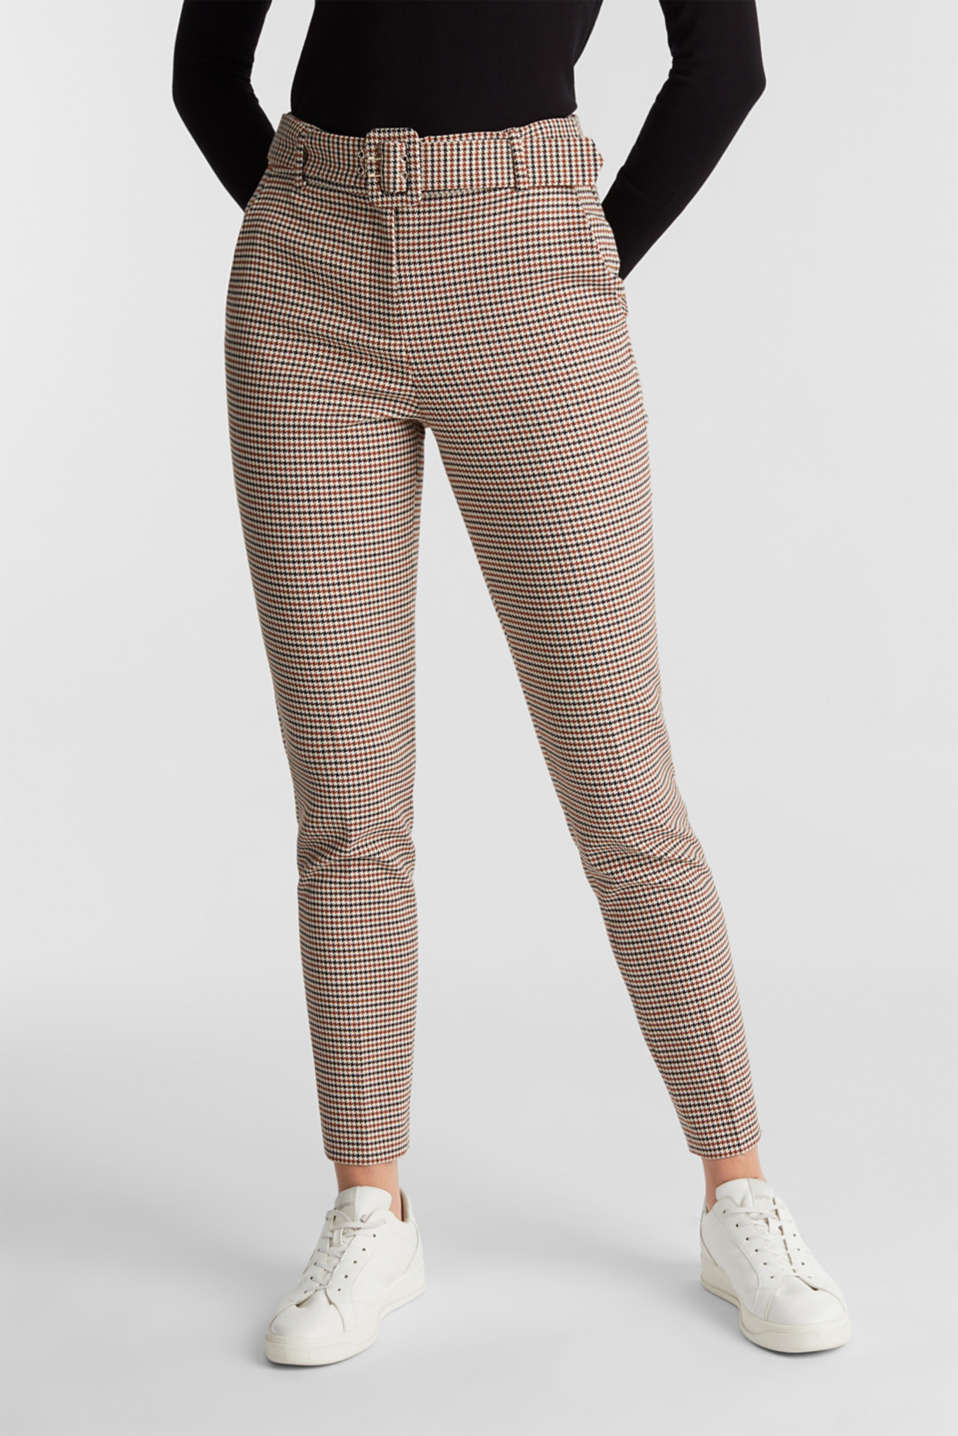 Esprit - HAHNENTRITT : pantalon Mix + Match